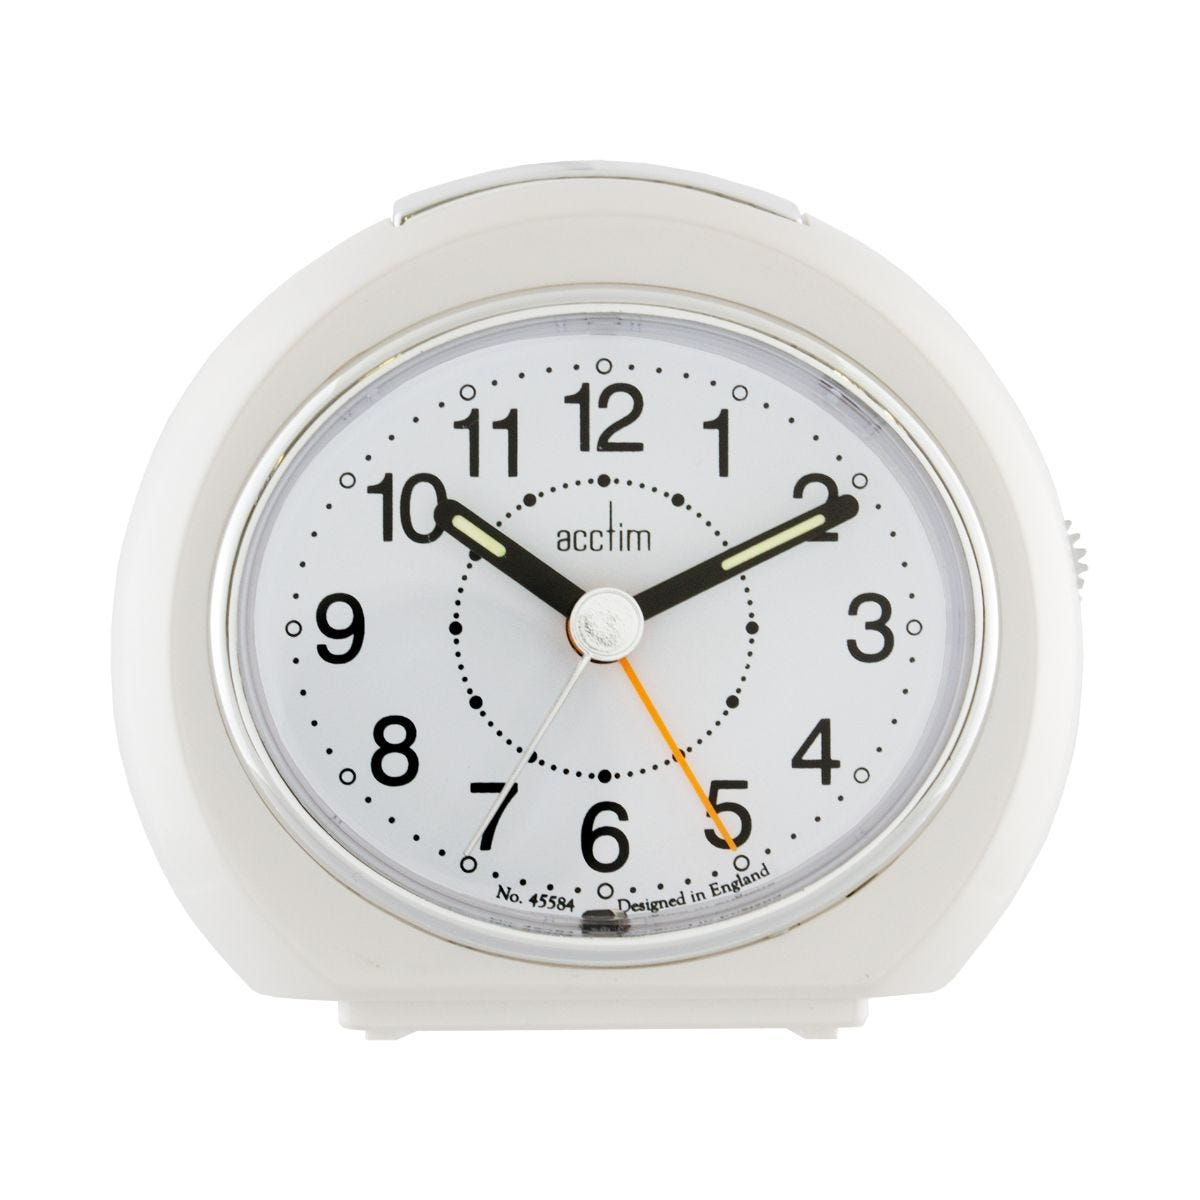 Image of Acctim Easi-Set Alarm Clock